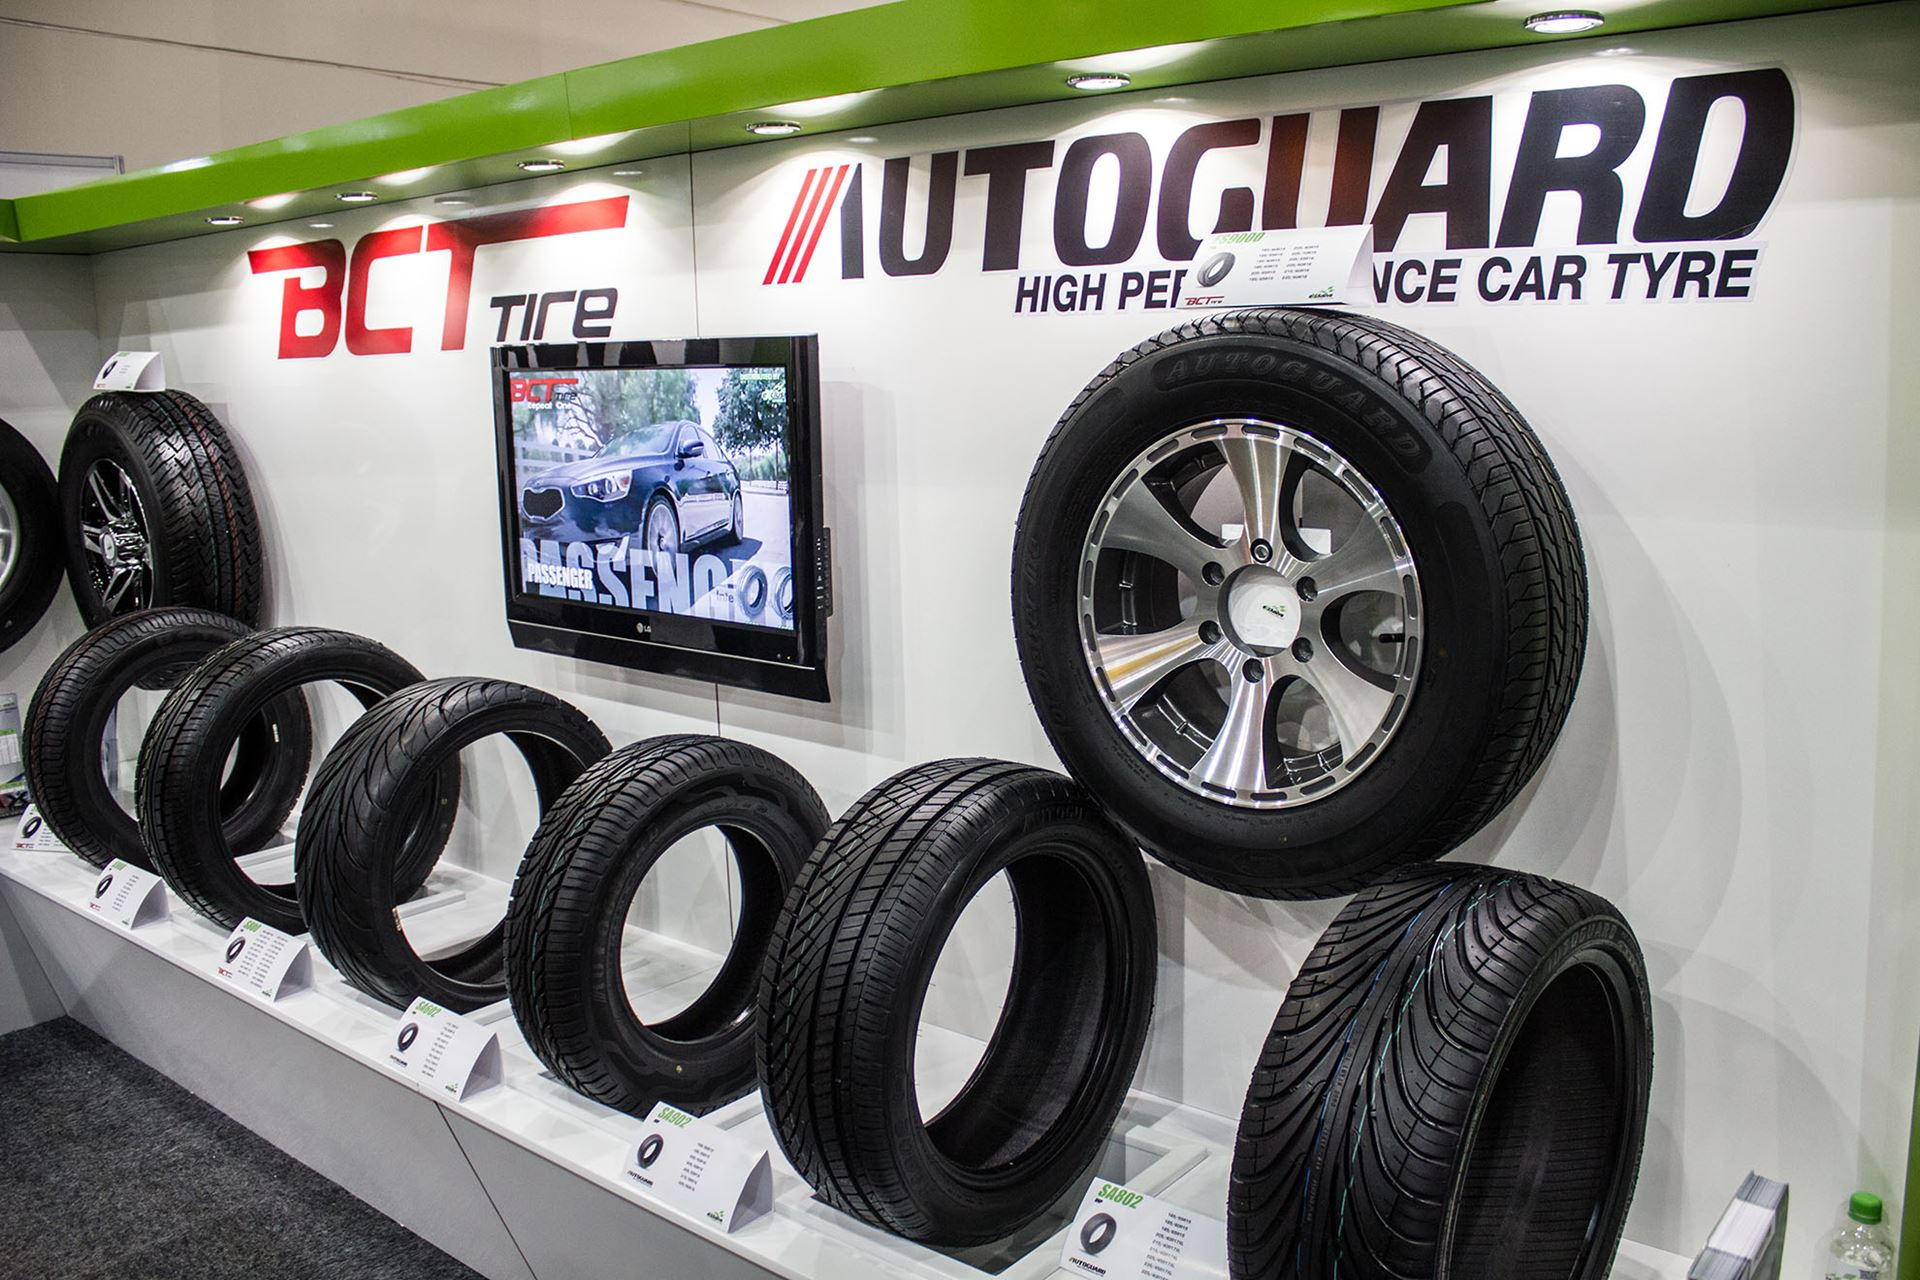 Tyre-Expo-South-Africa-2014-Exclusive-Tyres-07